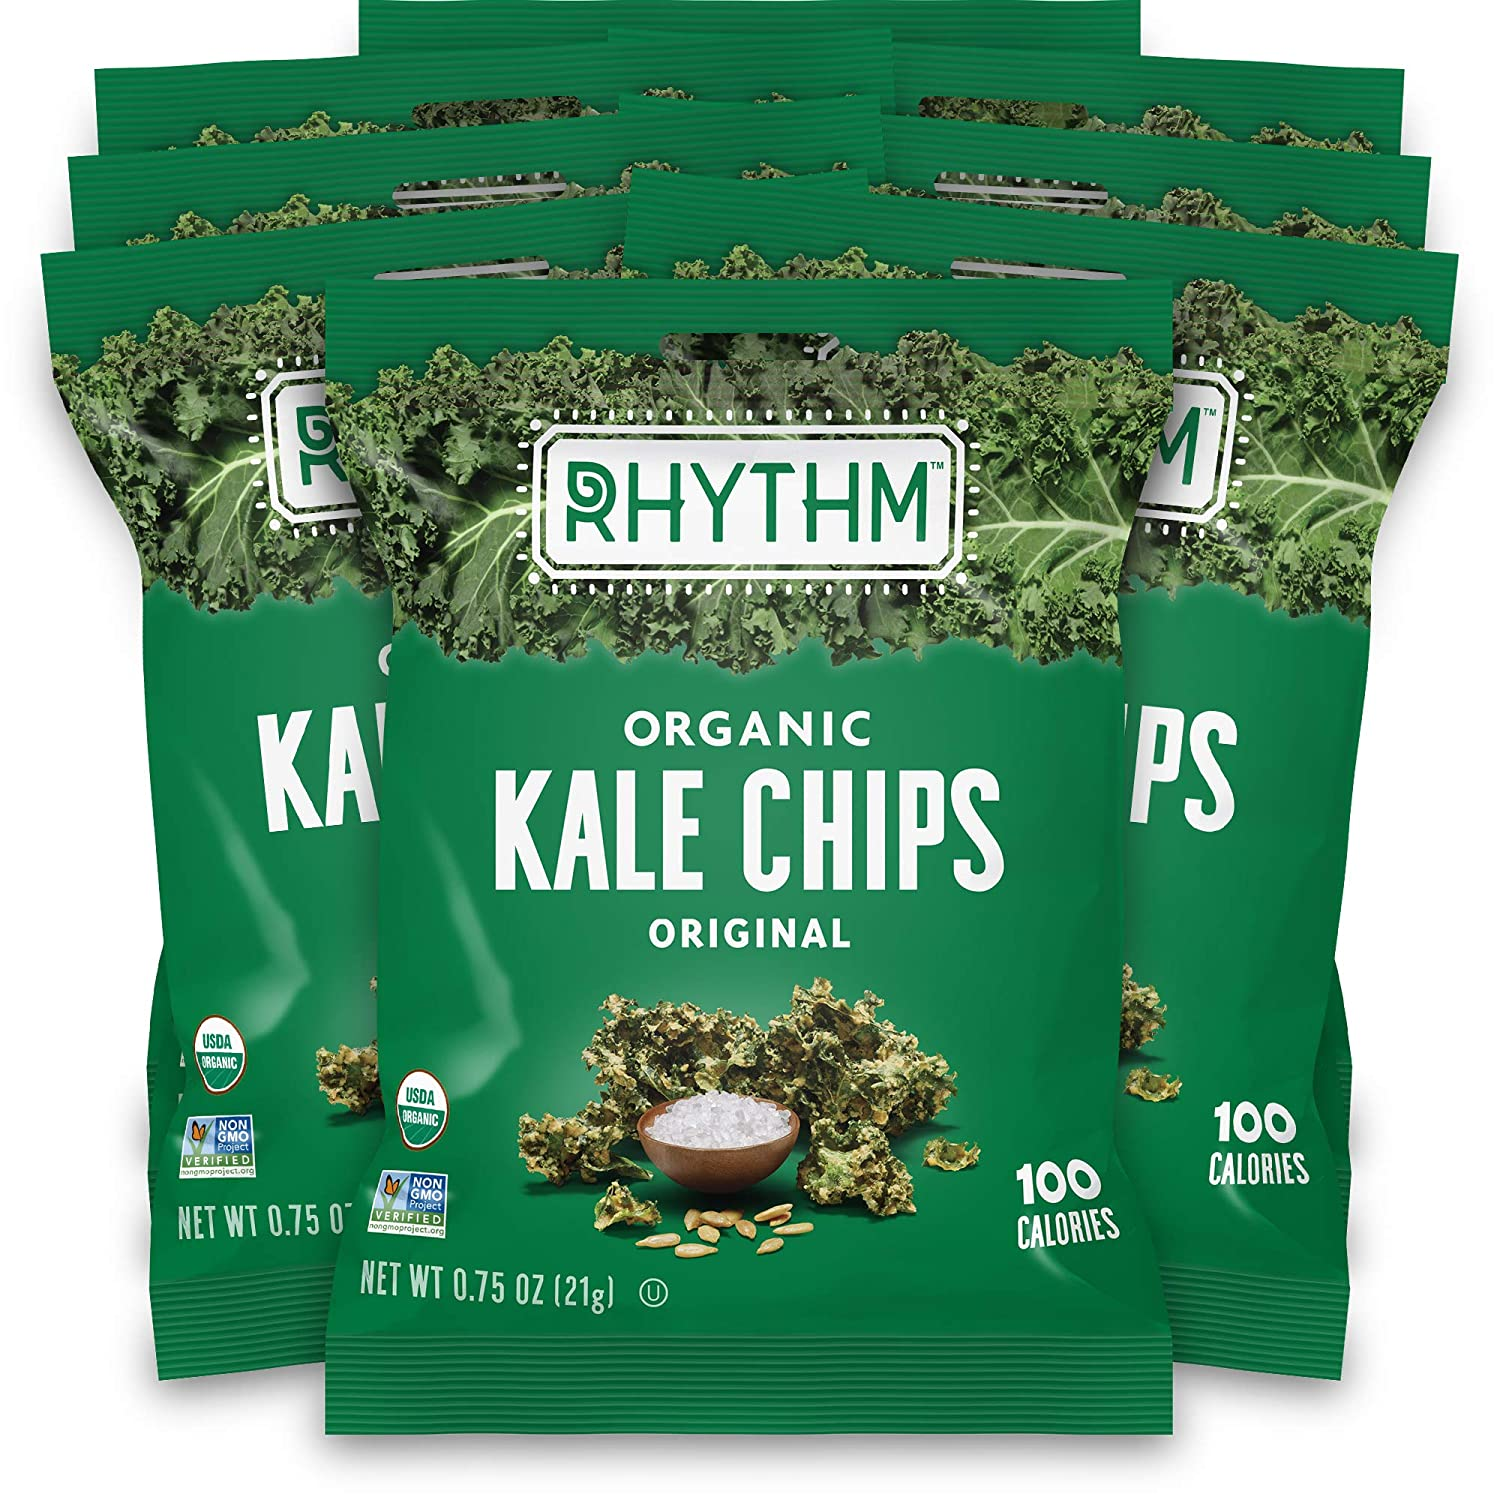 Rhythm Superfoods Kale Chips, Original, Organic and Non-GMO, 0.75 Oz (Pack of 8) Single Serves, Vegan/Gluten-Free Superfood Snacks